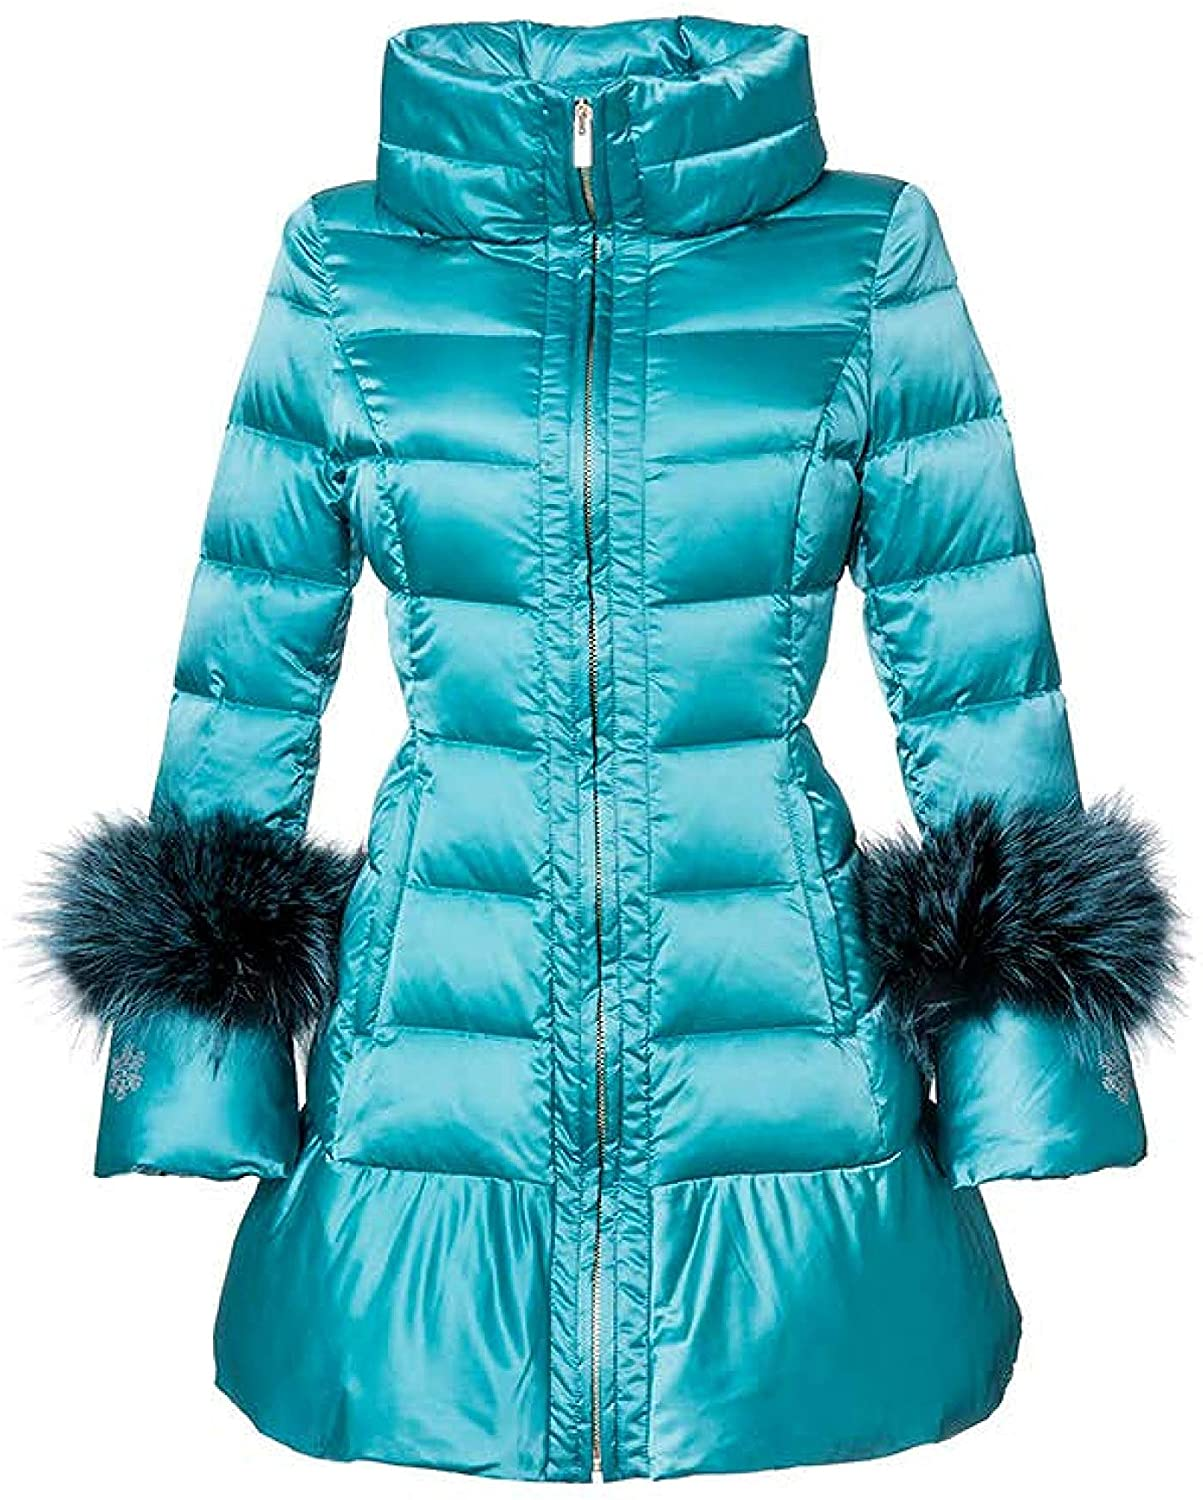 Lady Imprevue Milano Women Luxury Coat Jacket, Polar Fox Fur Cuffs, 100% Quilted, Collar Full